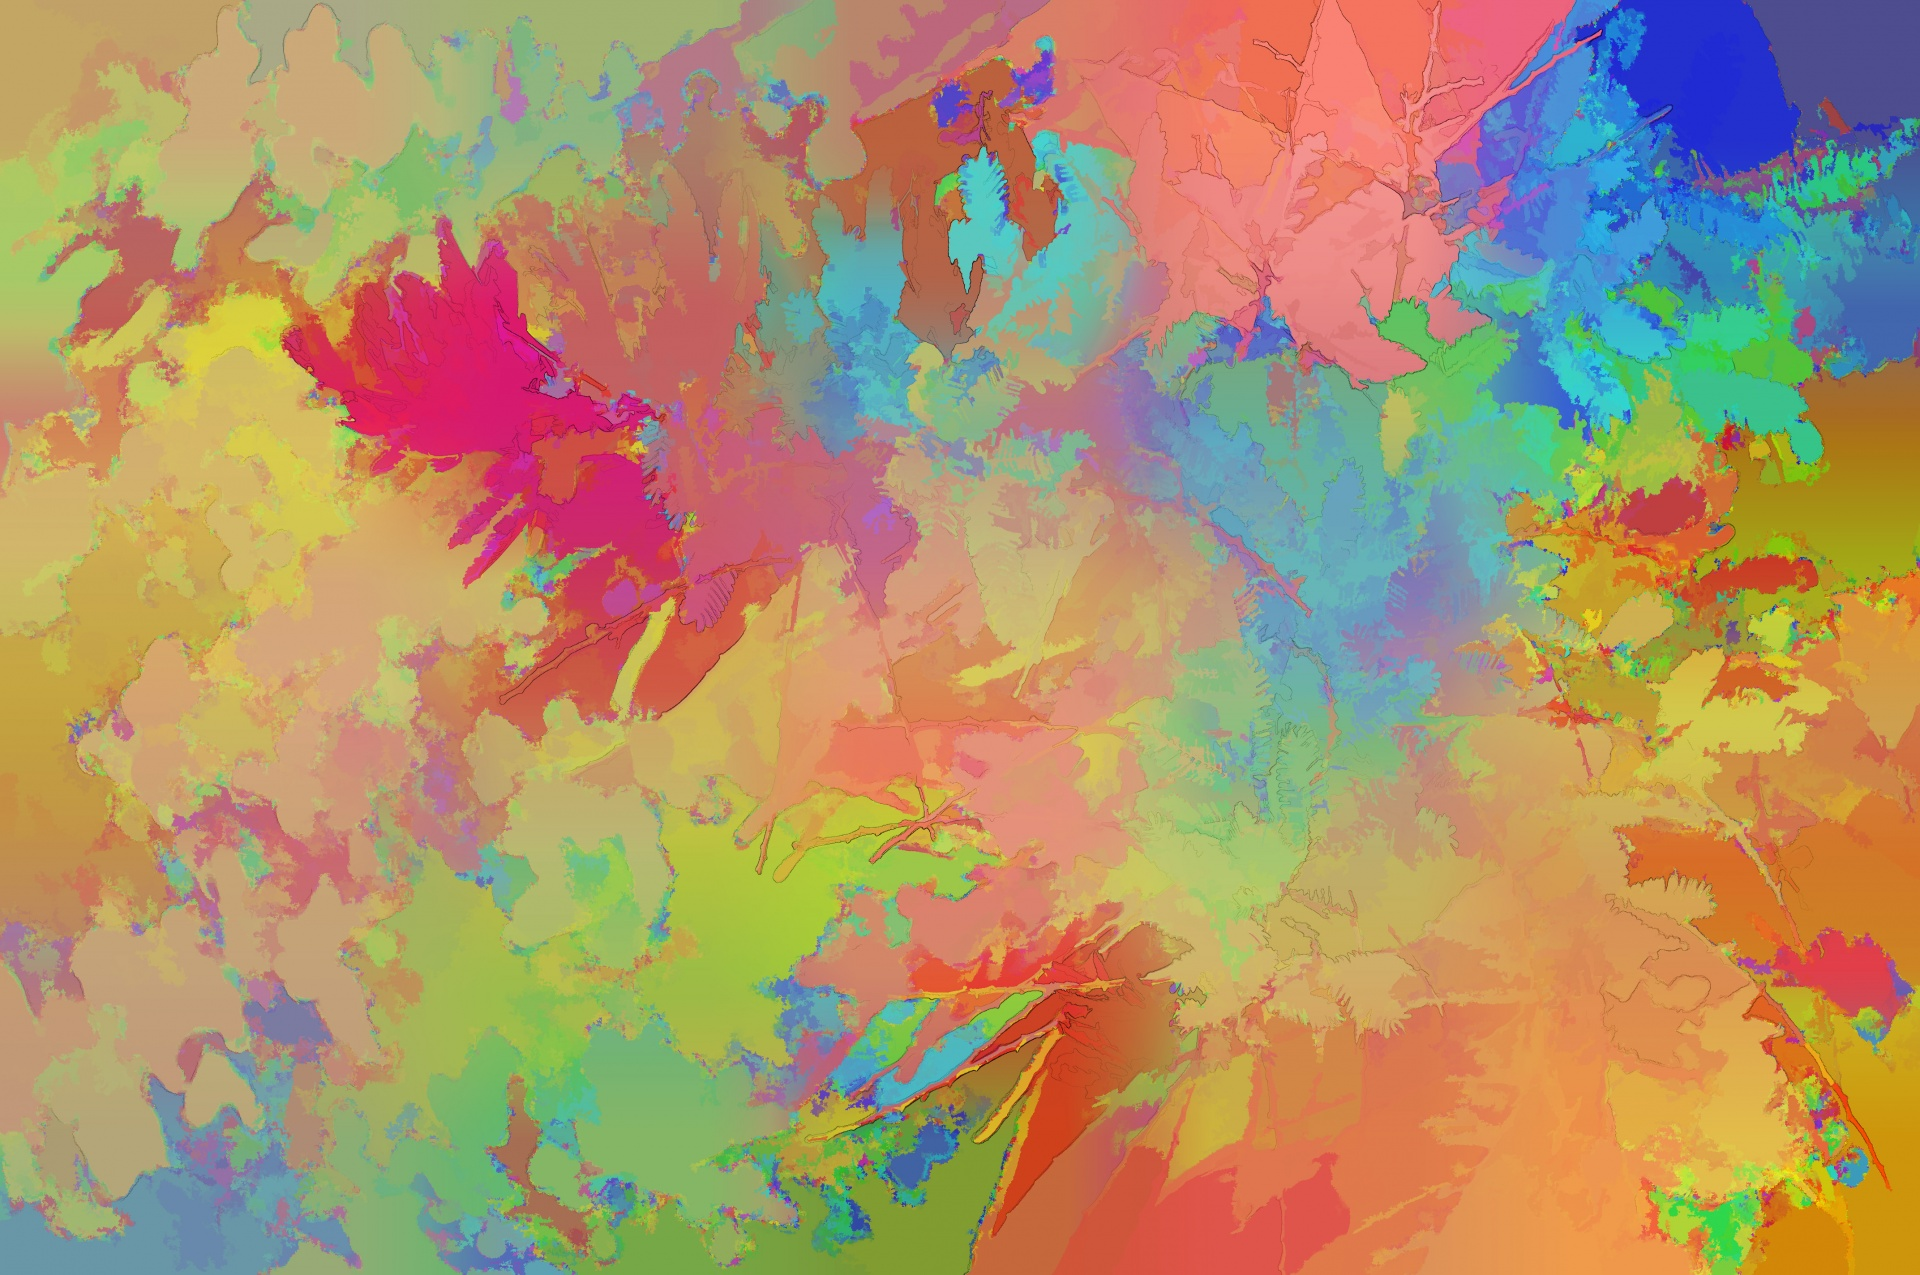 Download Free Photo Of Background Wallpaper Abstract Colorful Colors From Needpix Com